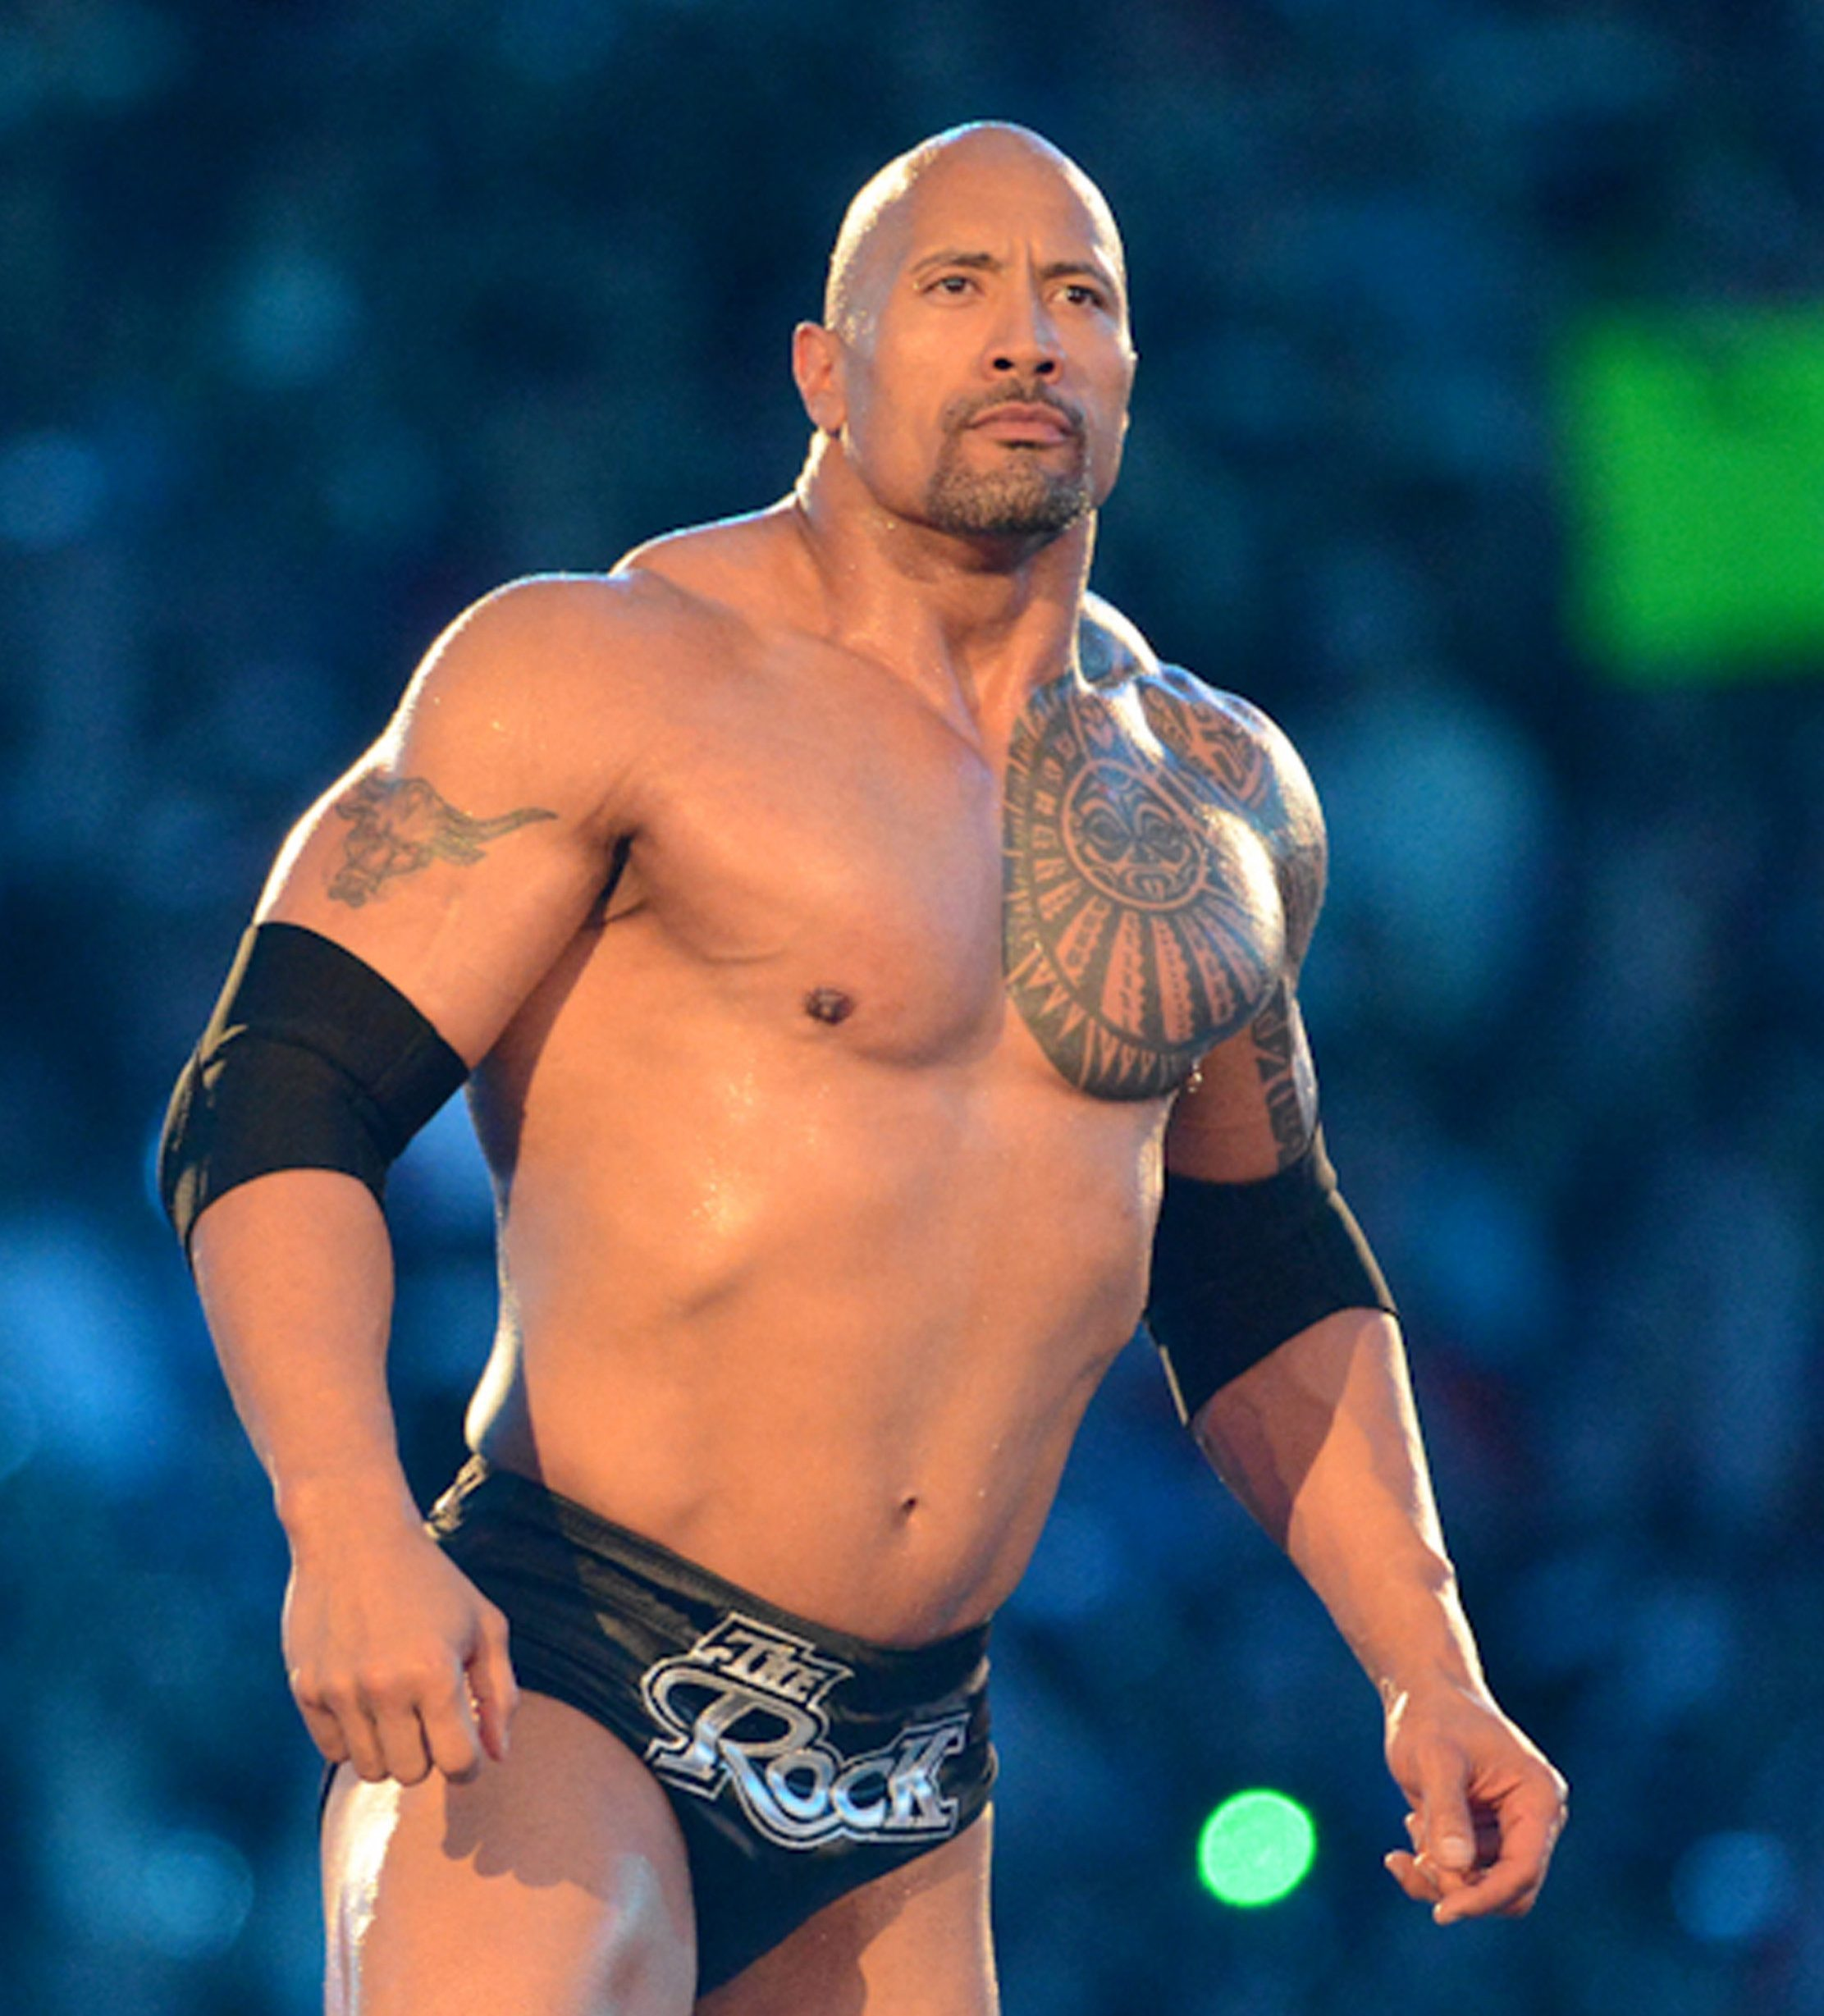 Dwayne Johnson lives the lavish life thanks to money earned from the WWE and films